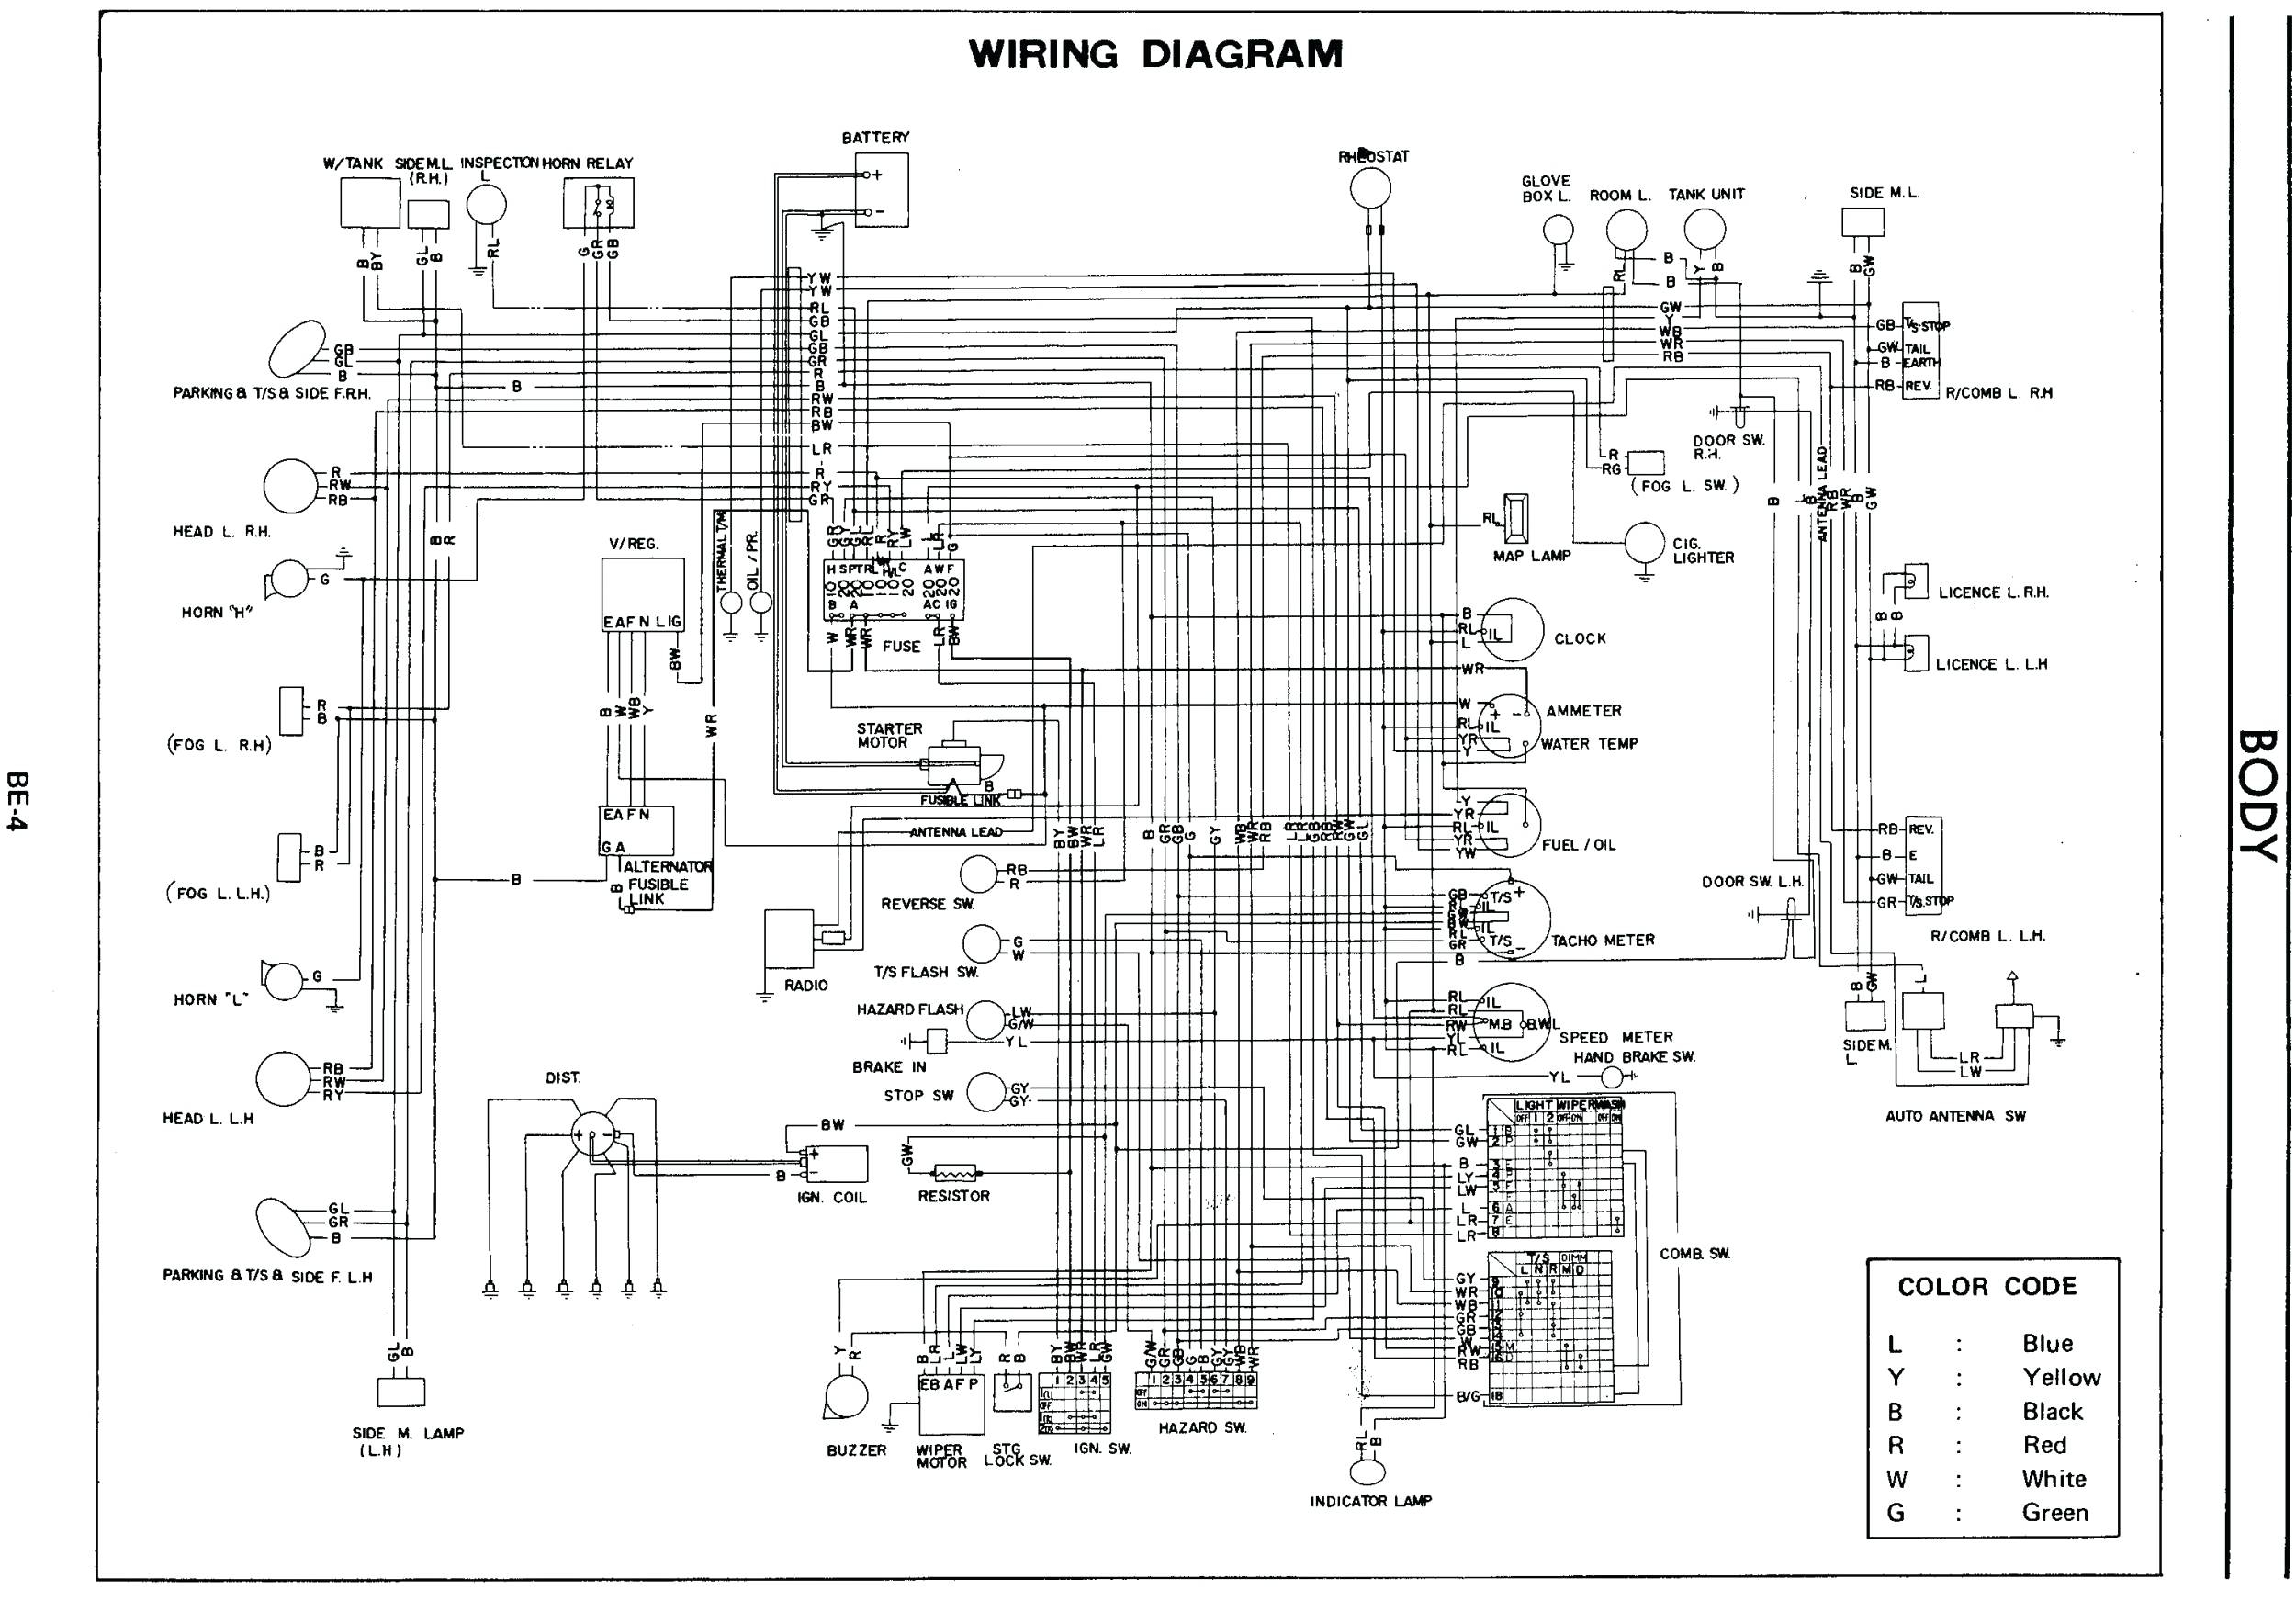 Wiring Diagrams Free Download Silver Series Library Diagram For Jem 2003 Mini Cooper Fuse Awesome